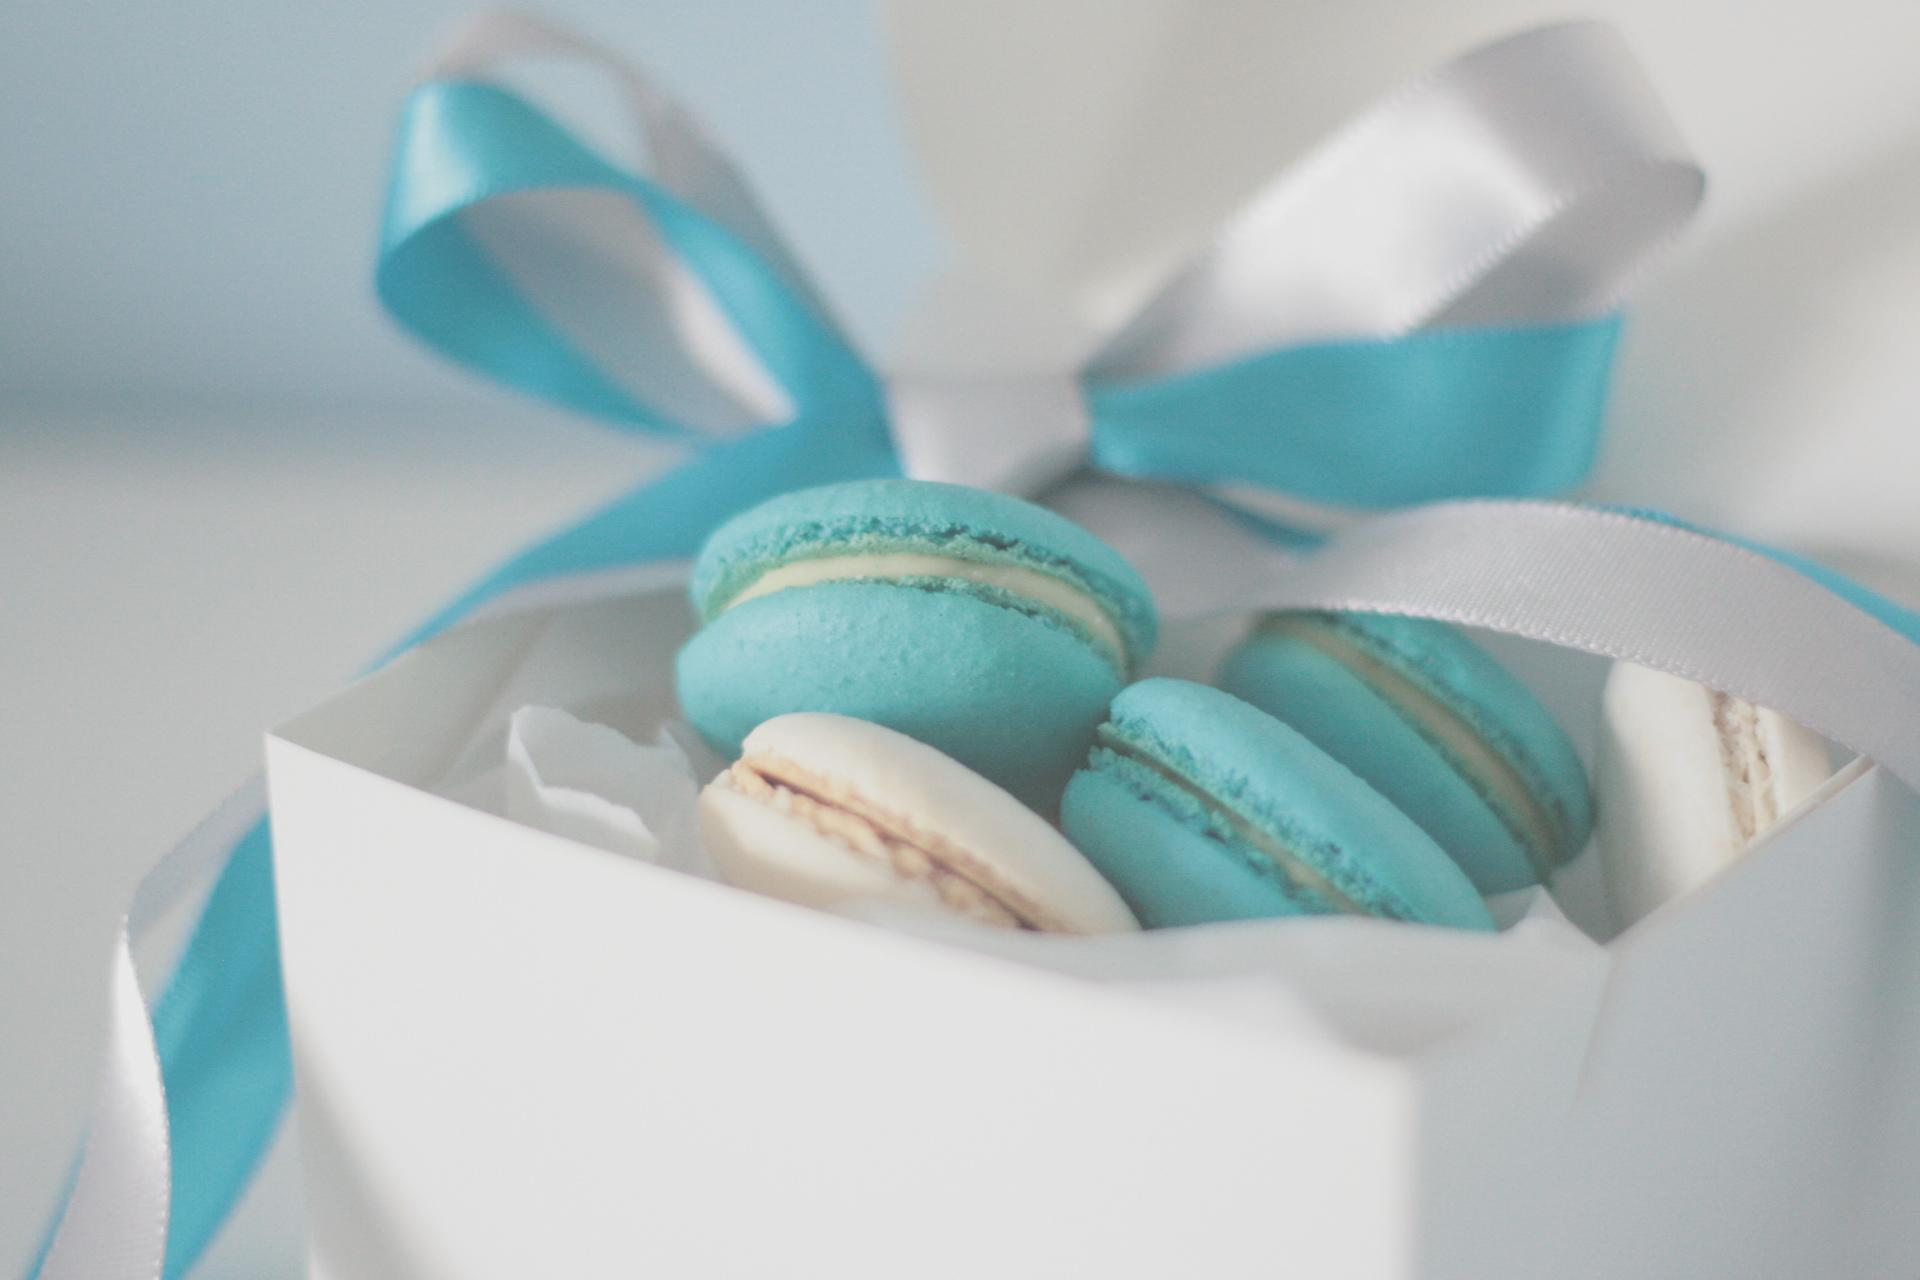 Macaron wallpapers HD quality